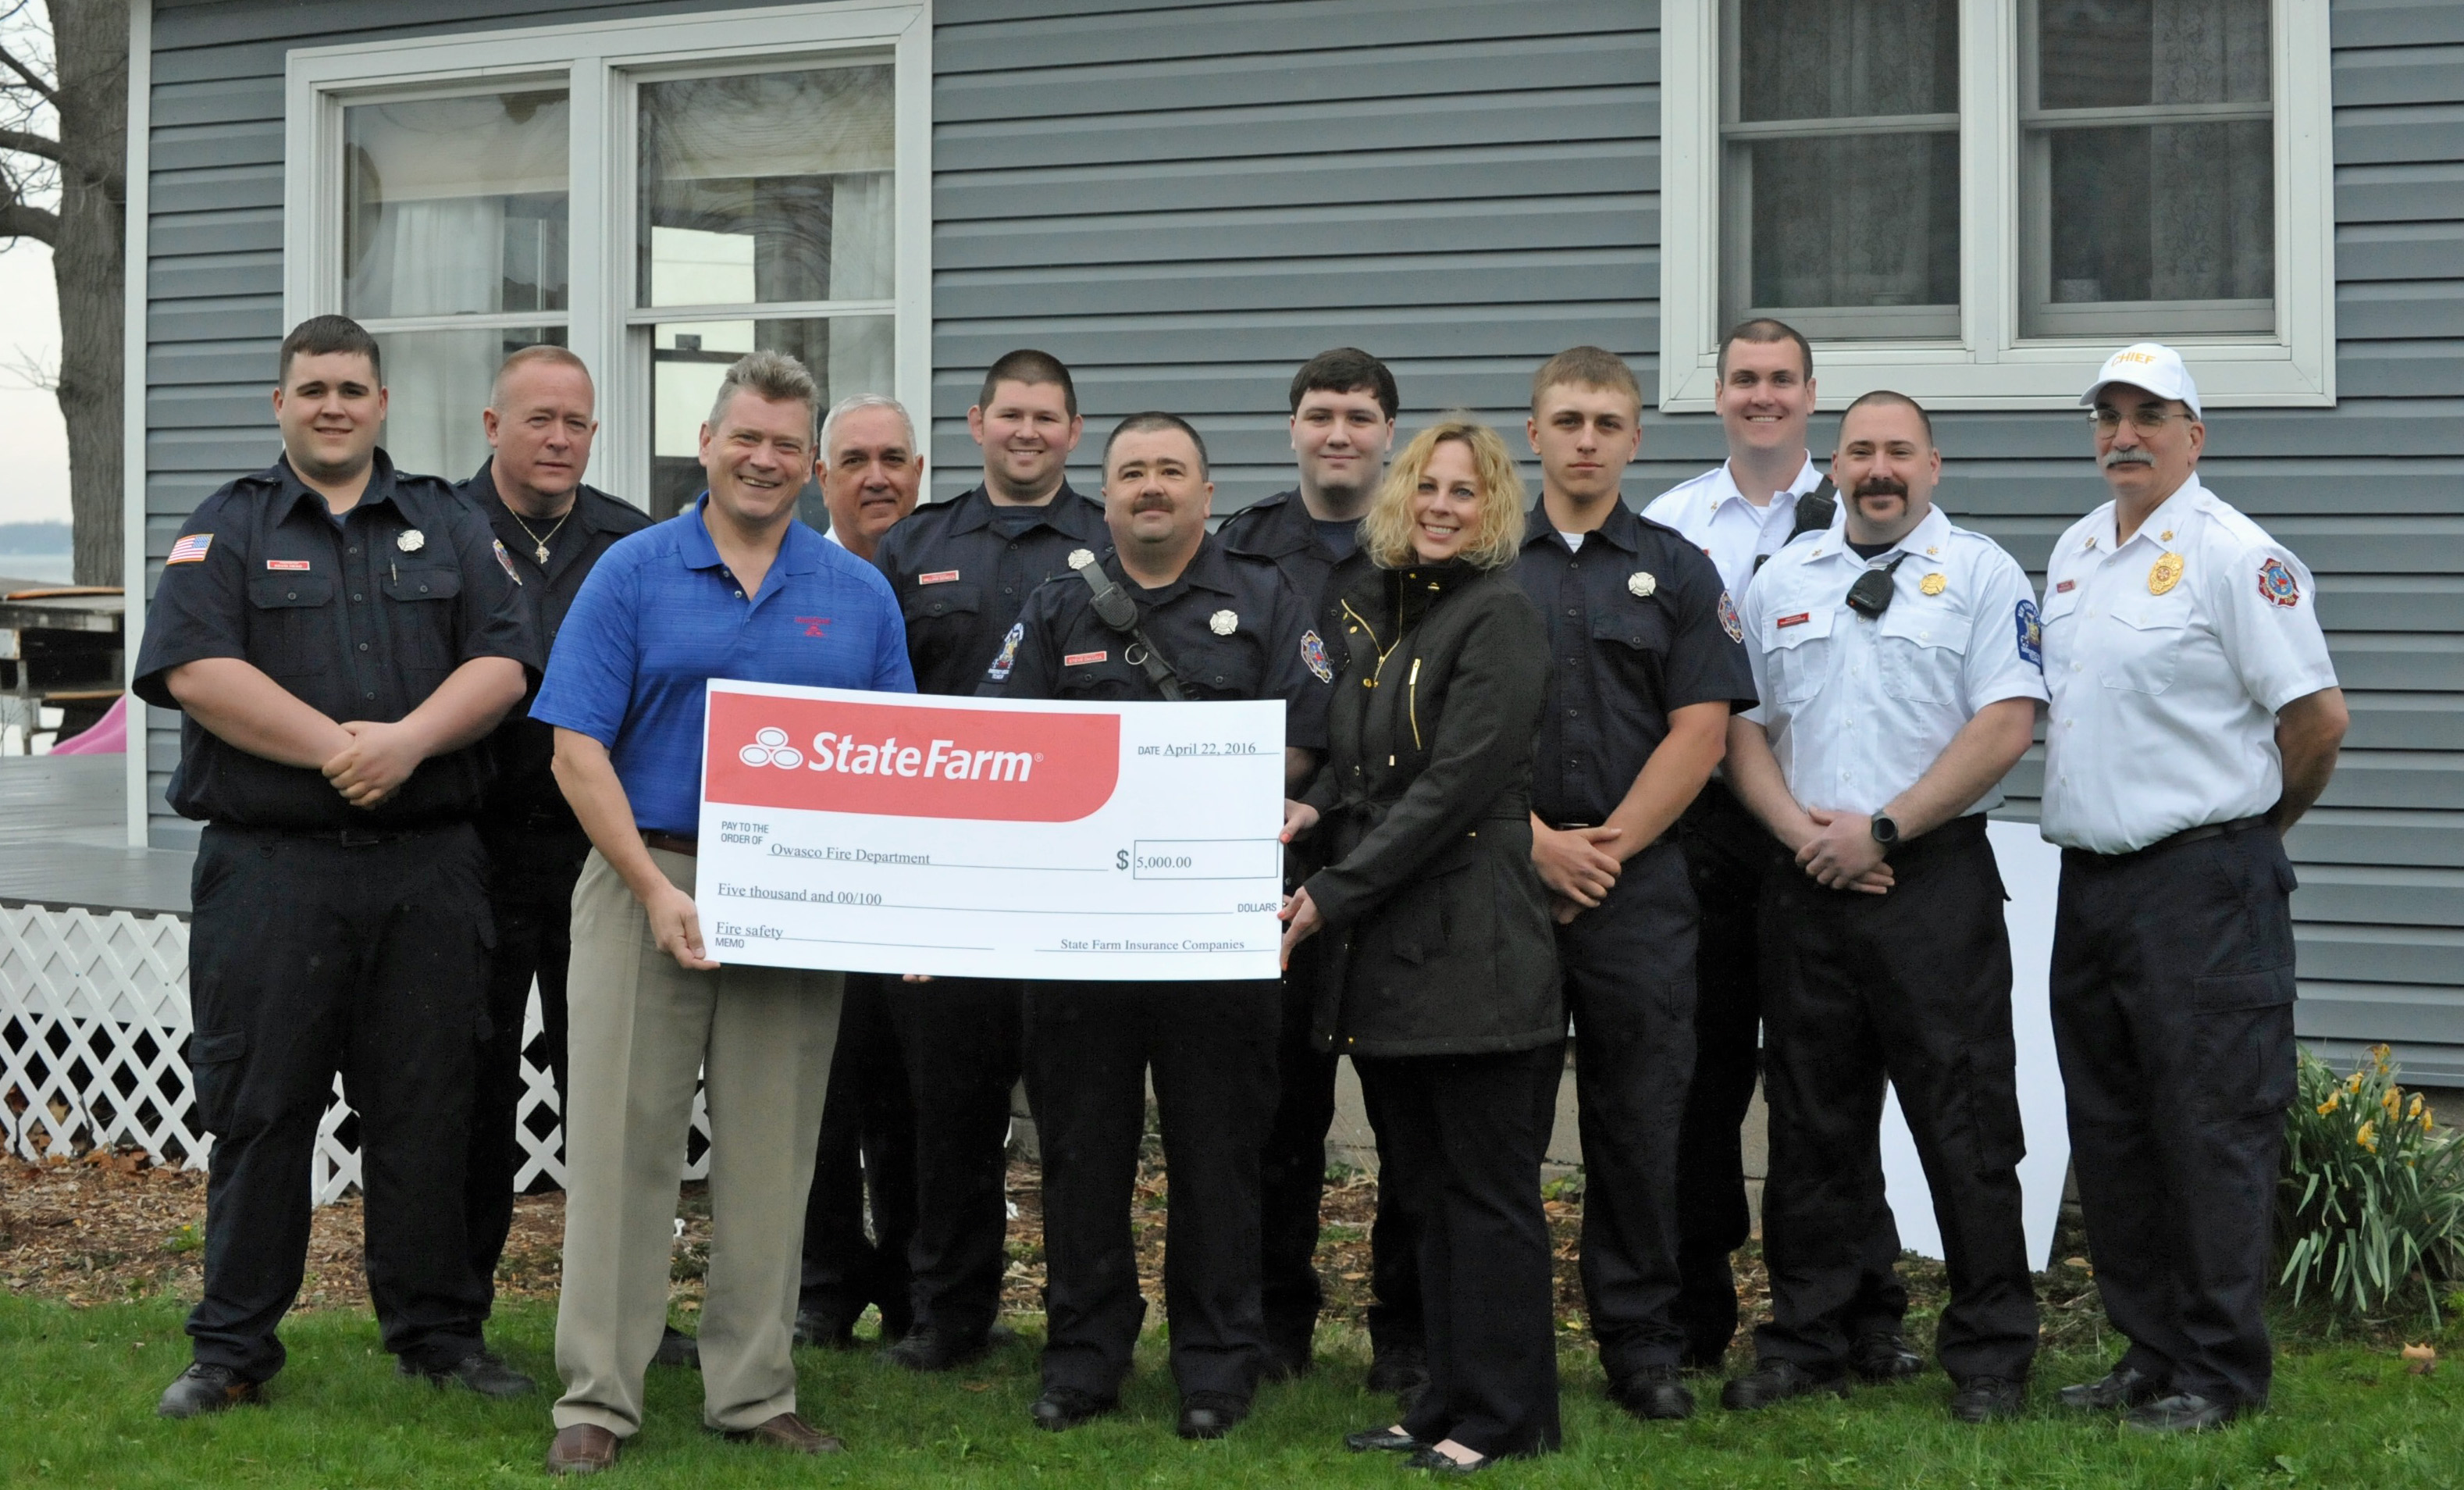 Firemen and State Farm posing with giant check